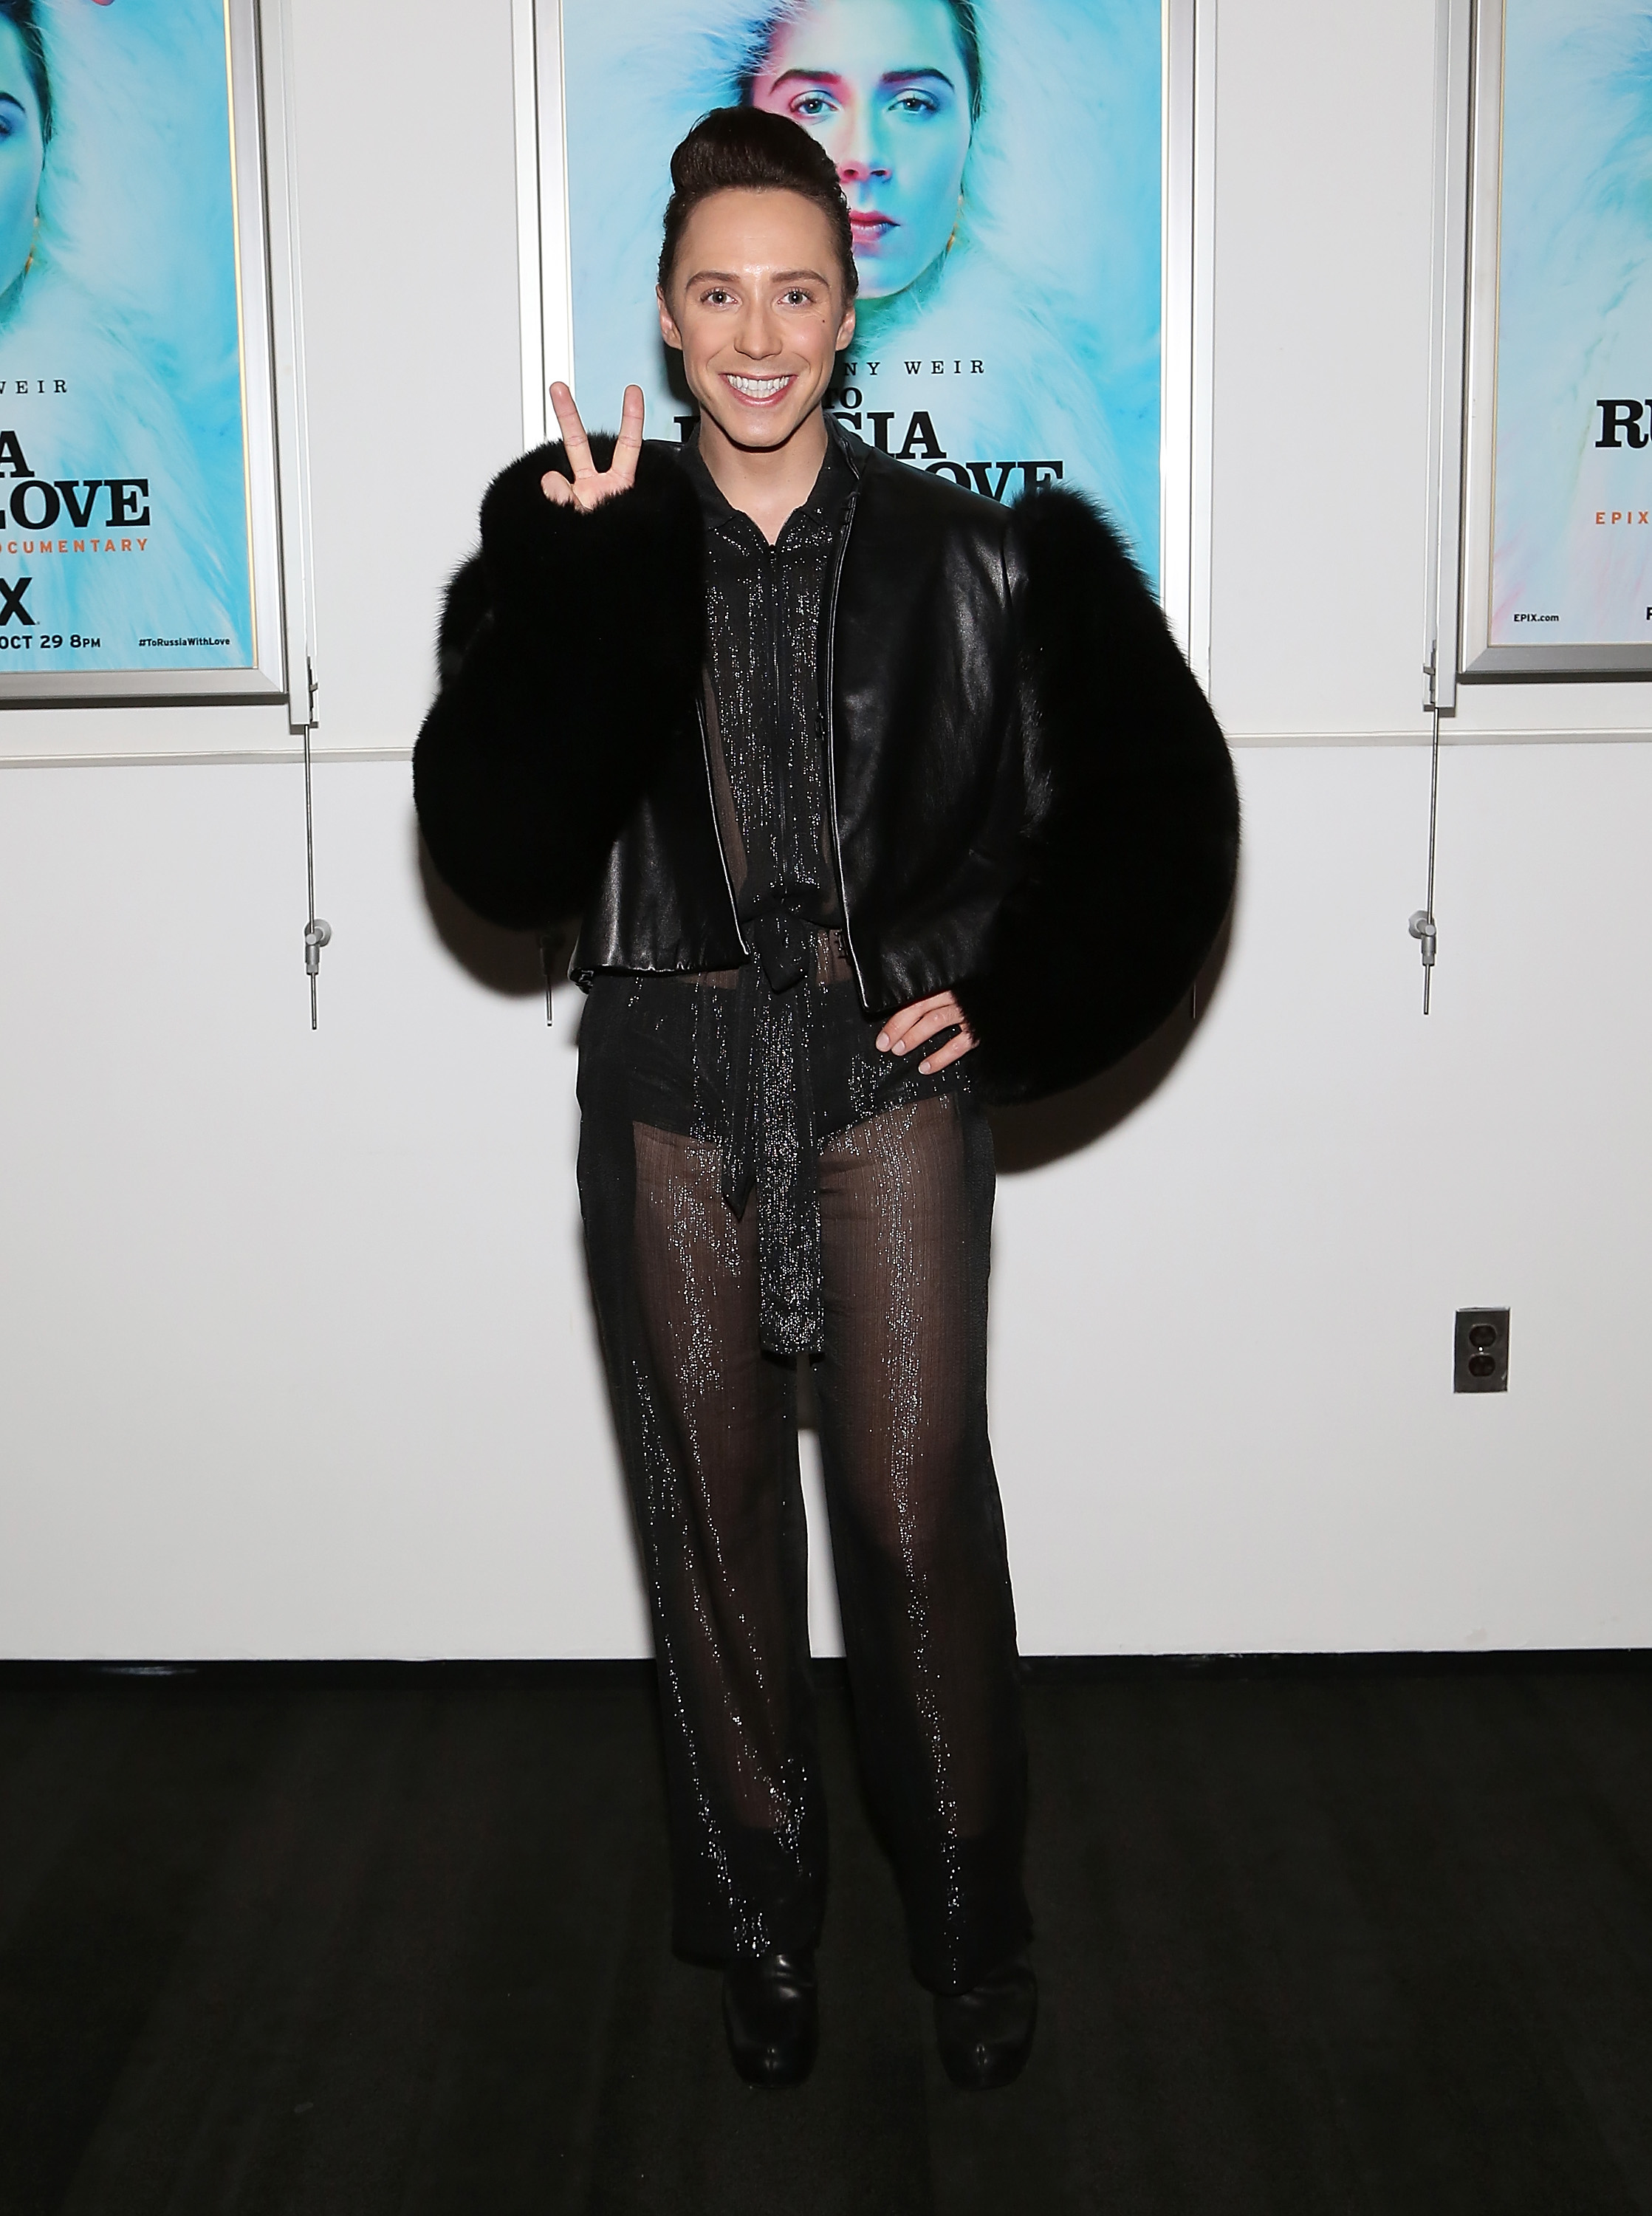 johnny weir has to sell his clothes on ebay to escape